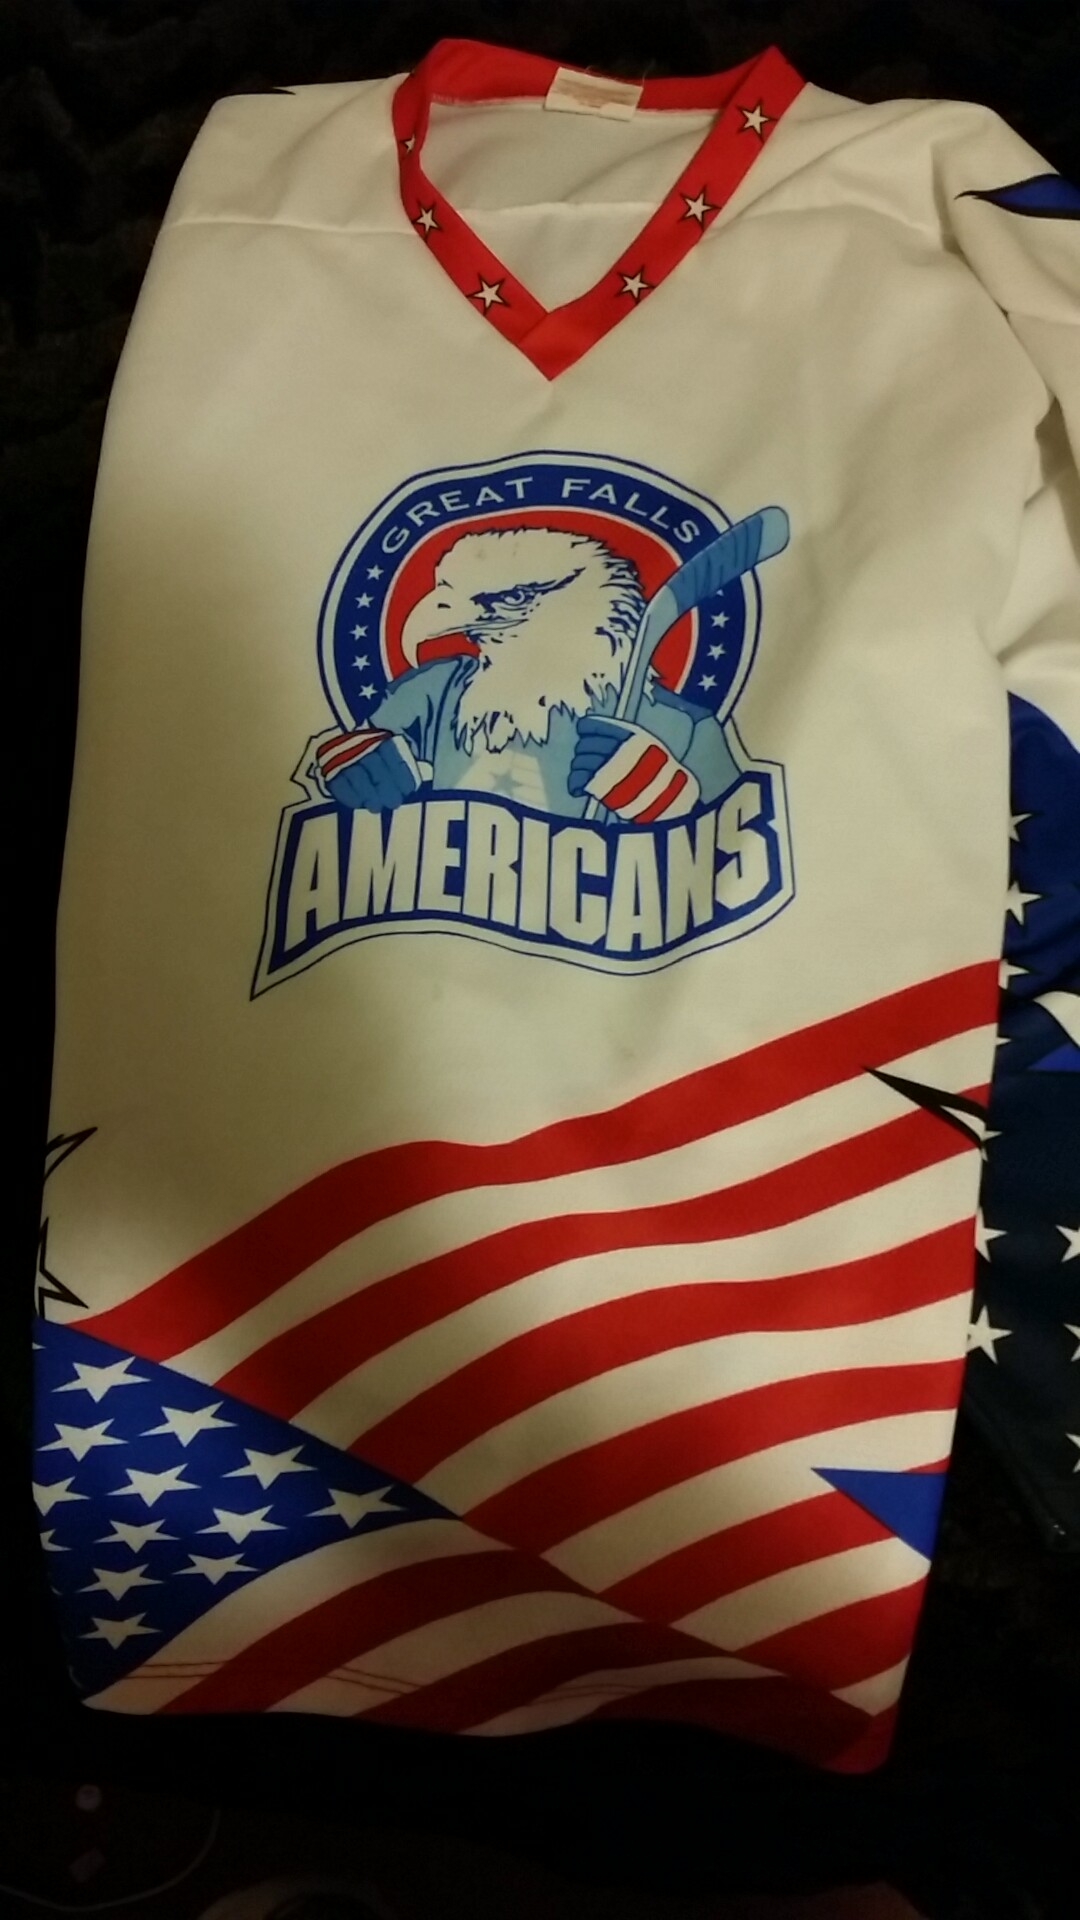 Americans hockey jersey large.